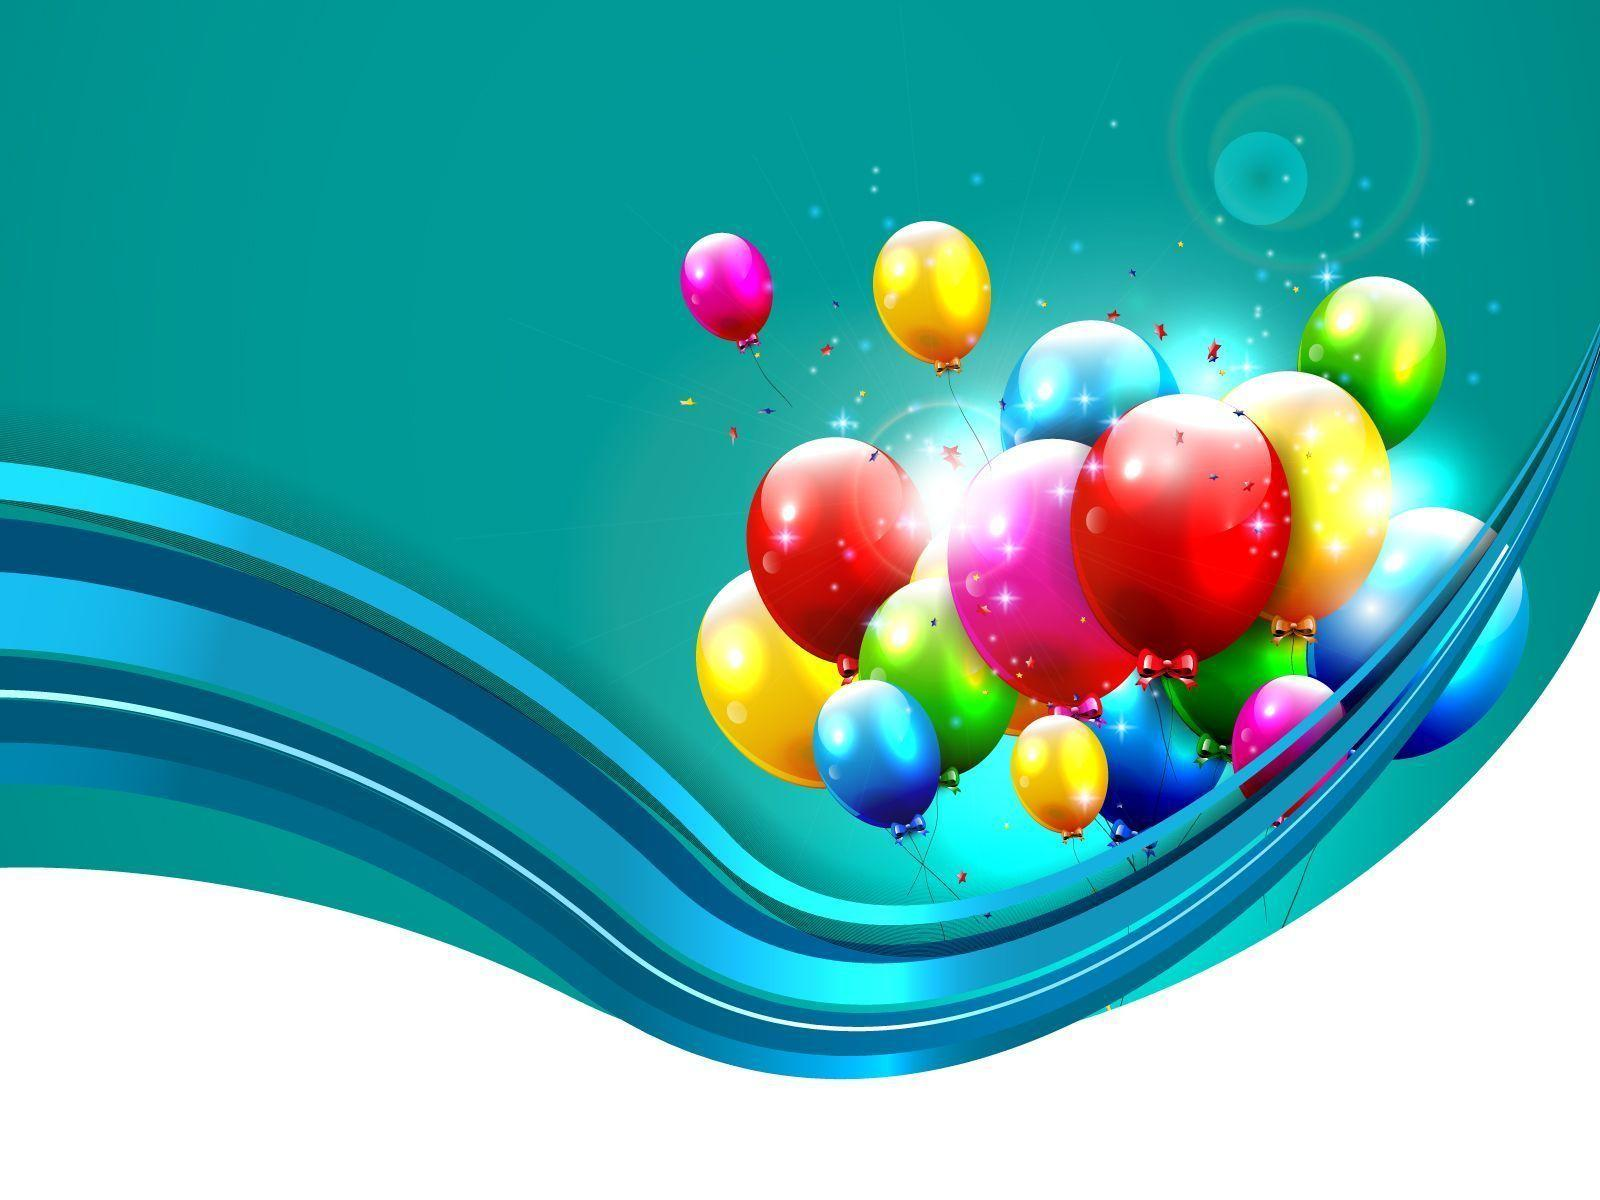 Wavy Line, Balloons, Celebration Background For PowerPoint, Birthday, New Year #729